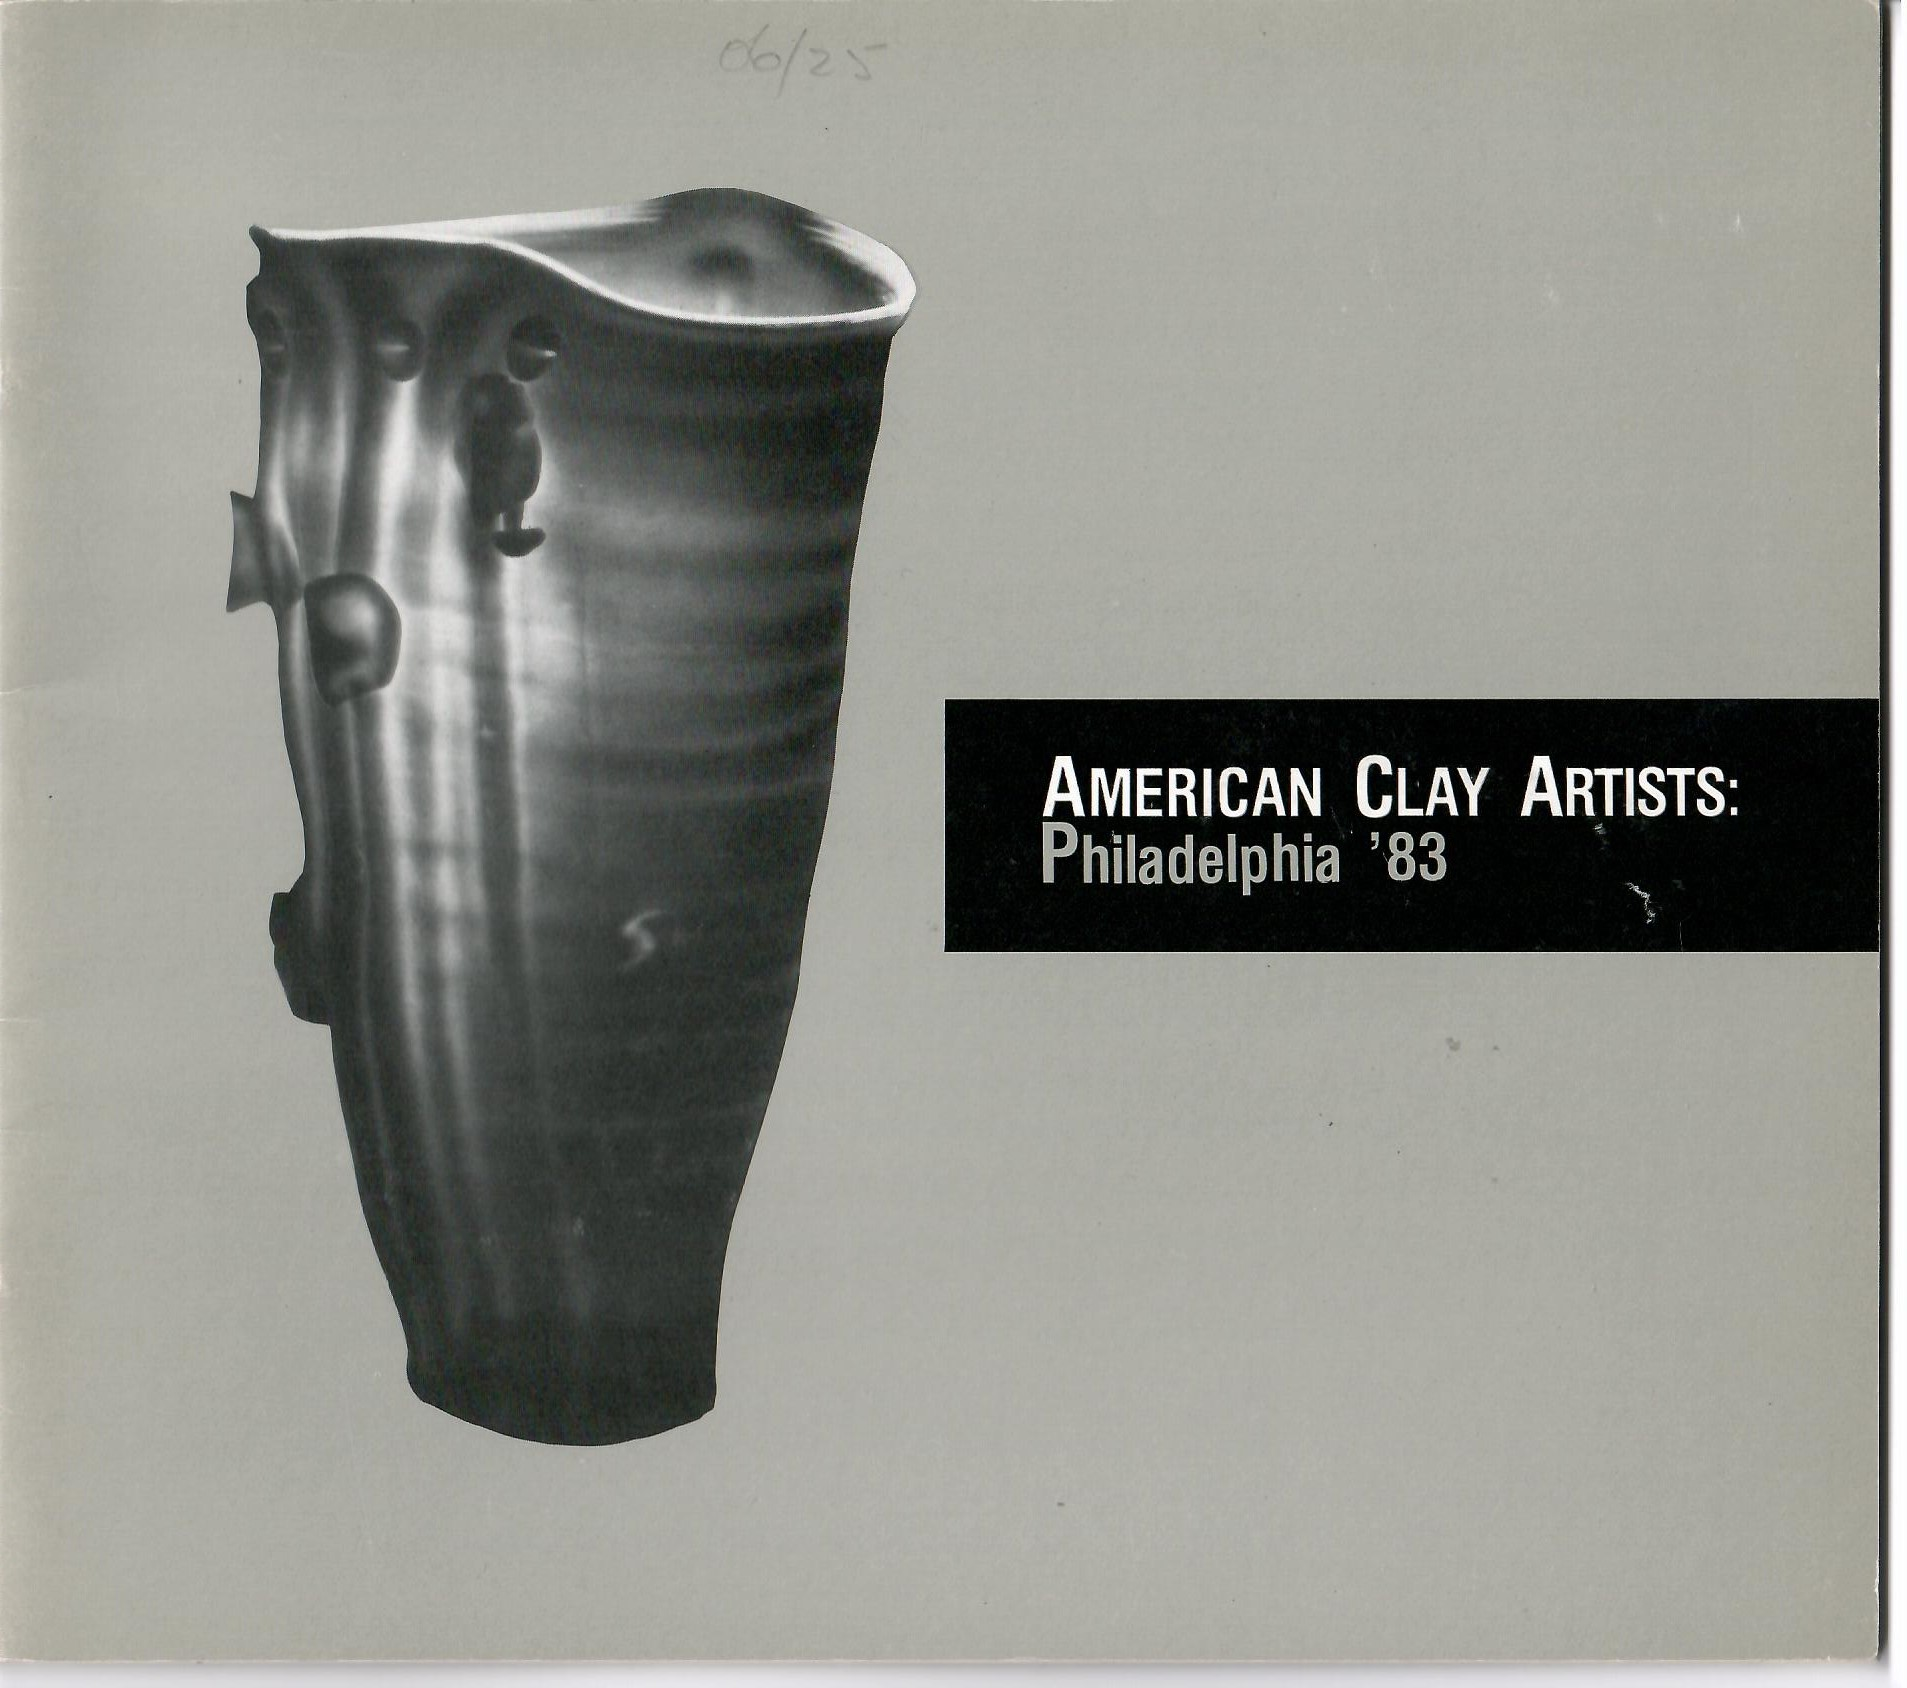 Image for Philadelphia '83; AMERICAN CLAY ARTISTS